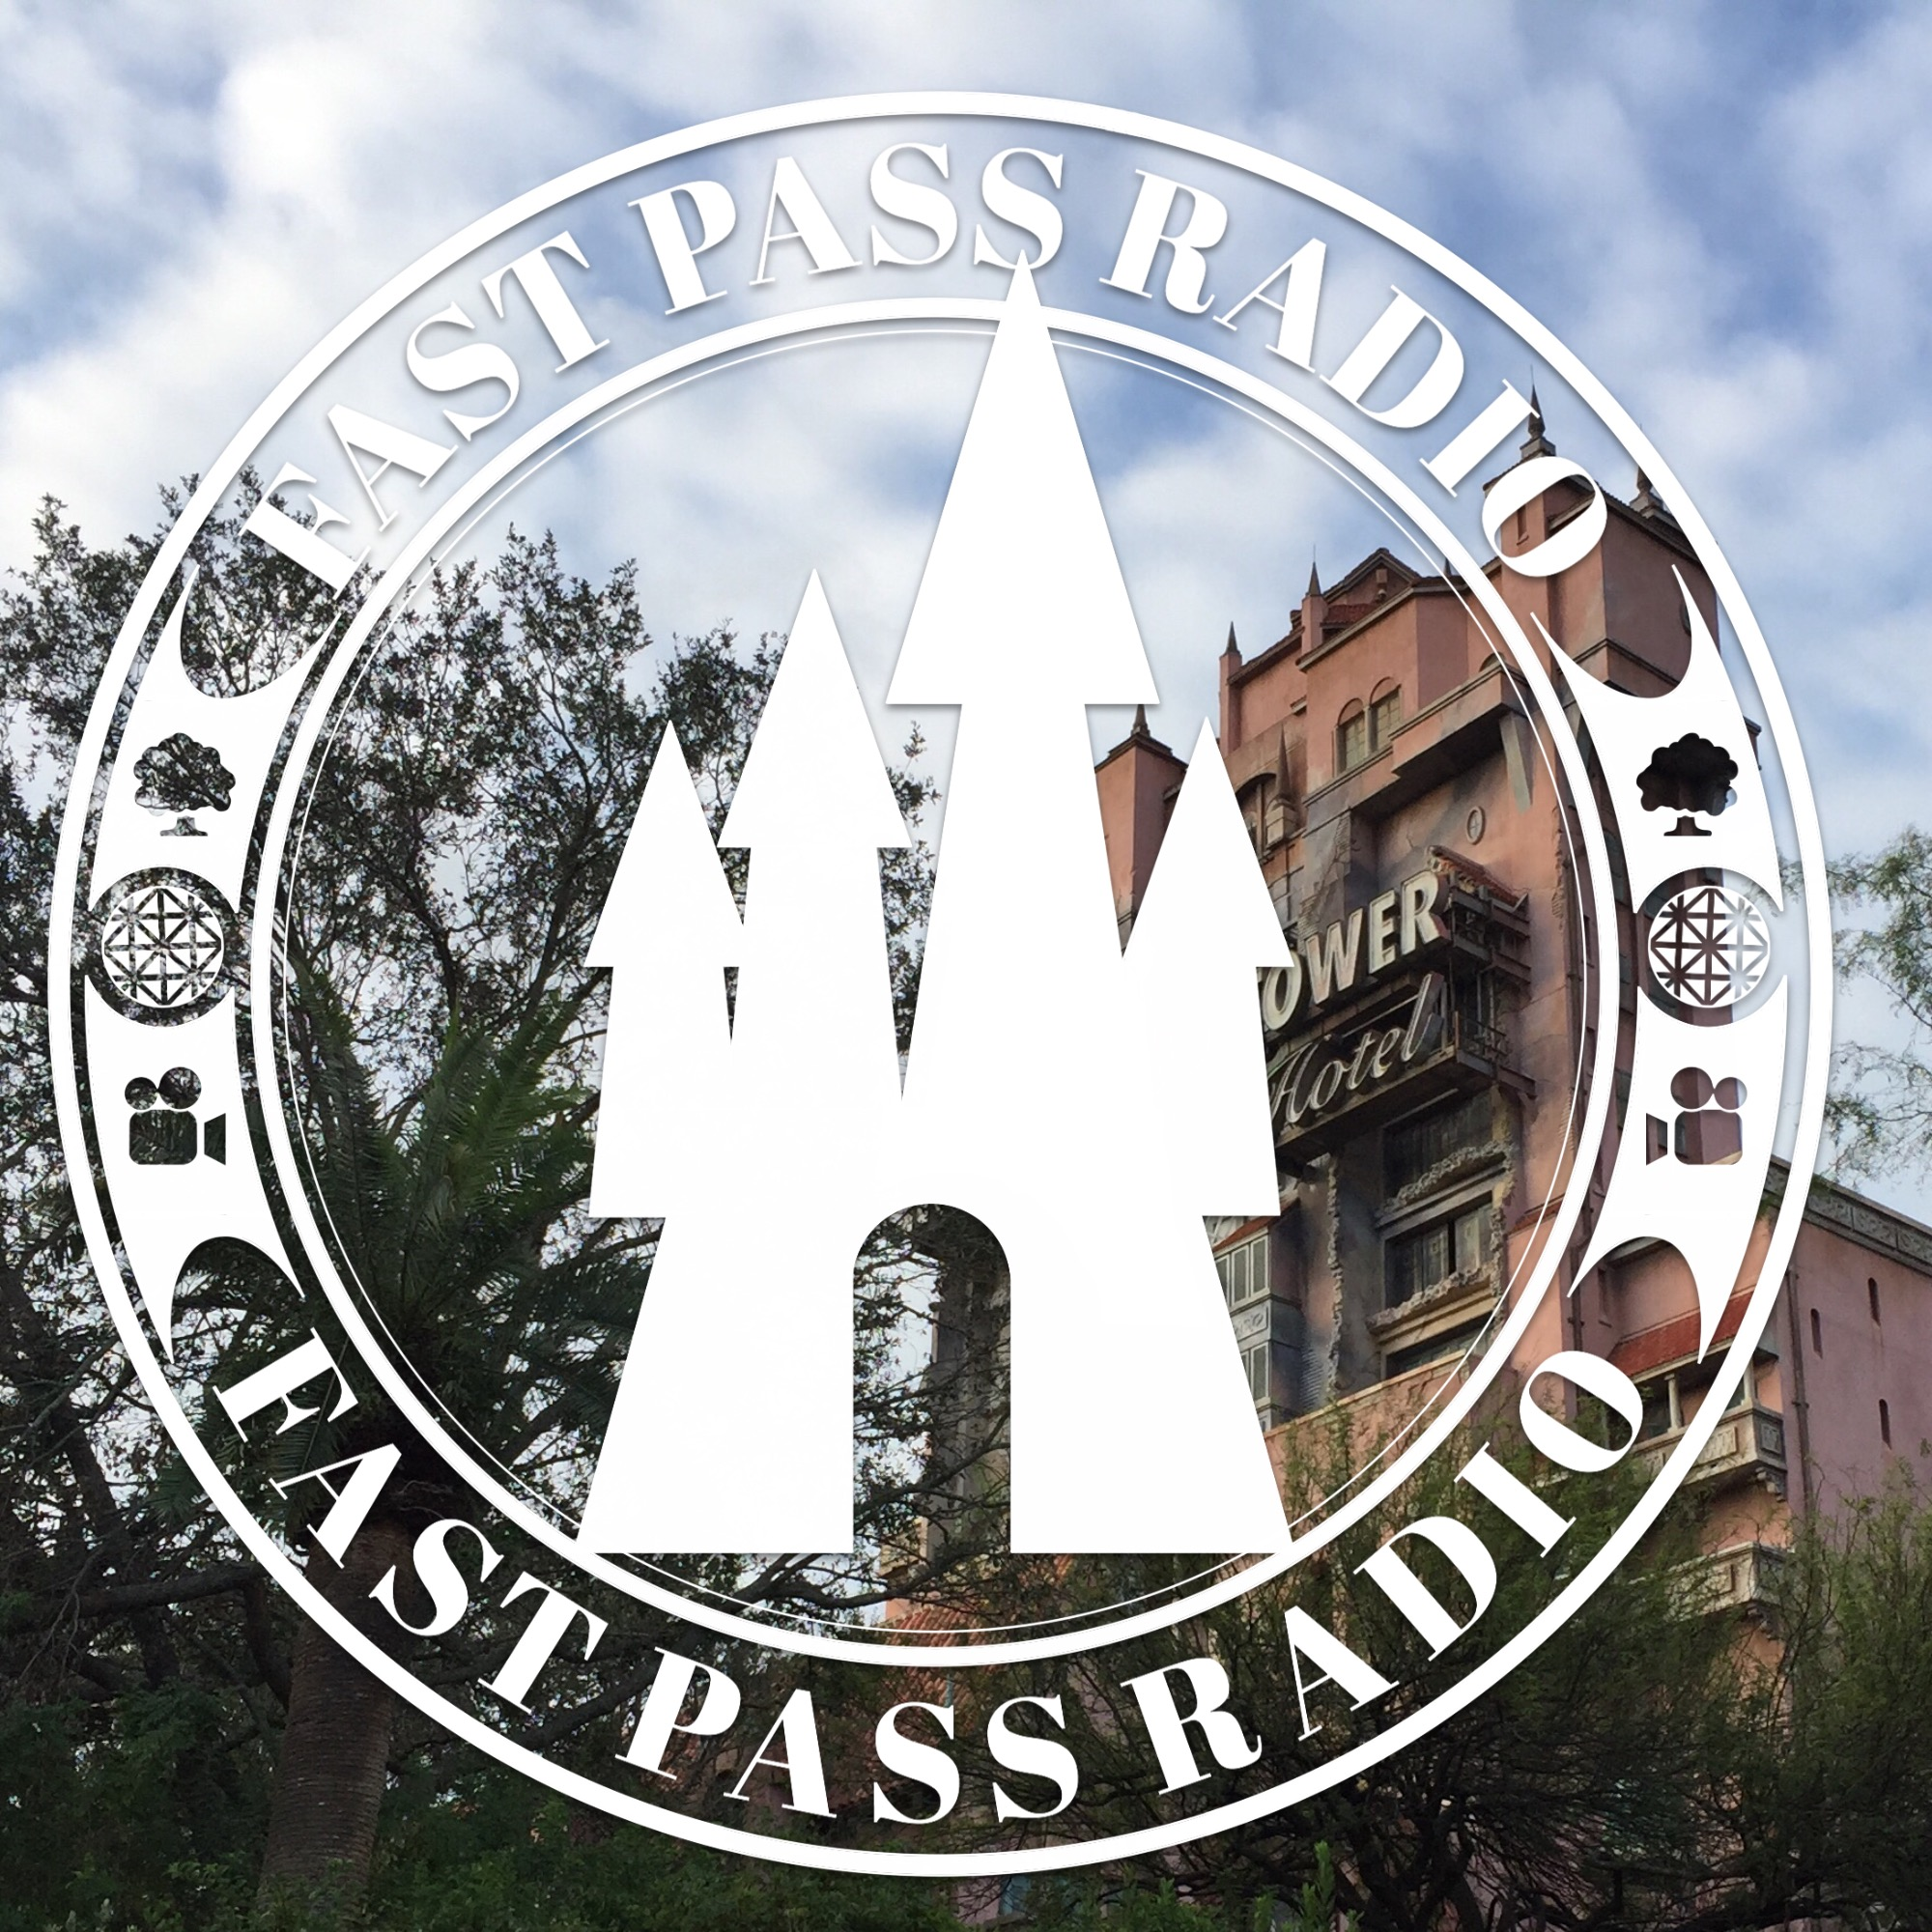 Art for Call 50Fastpass by Fastpass Radio